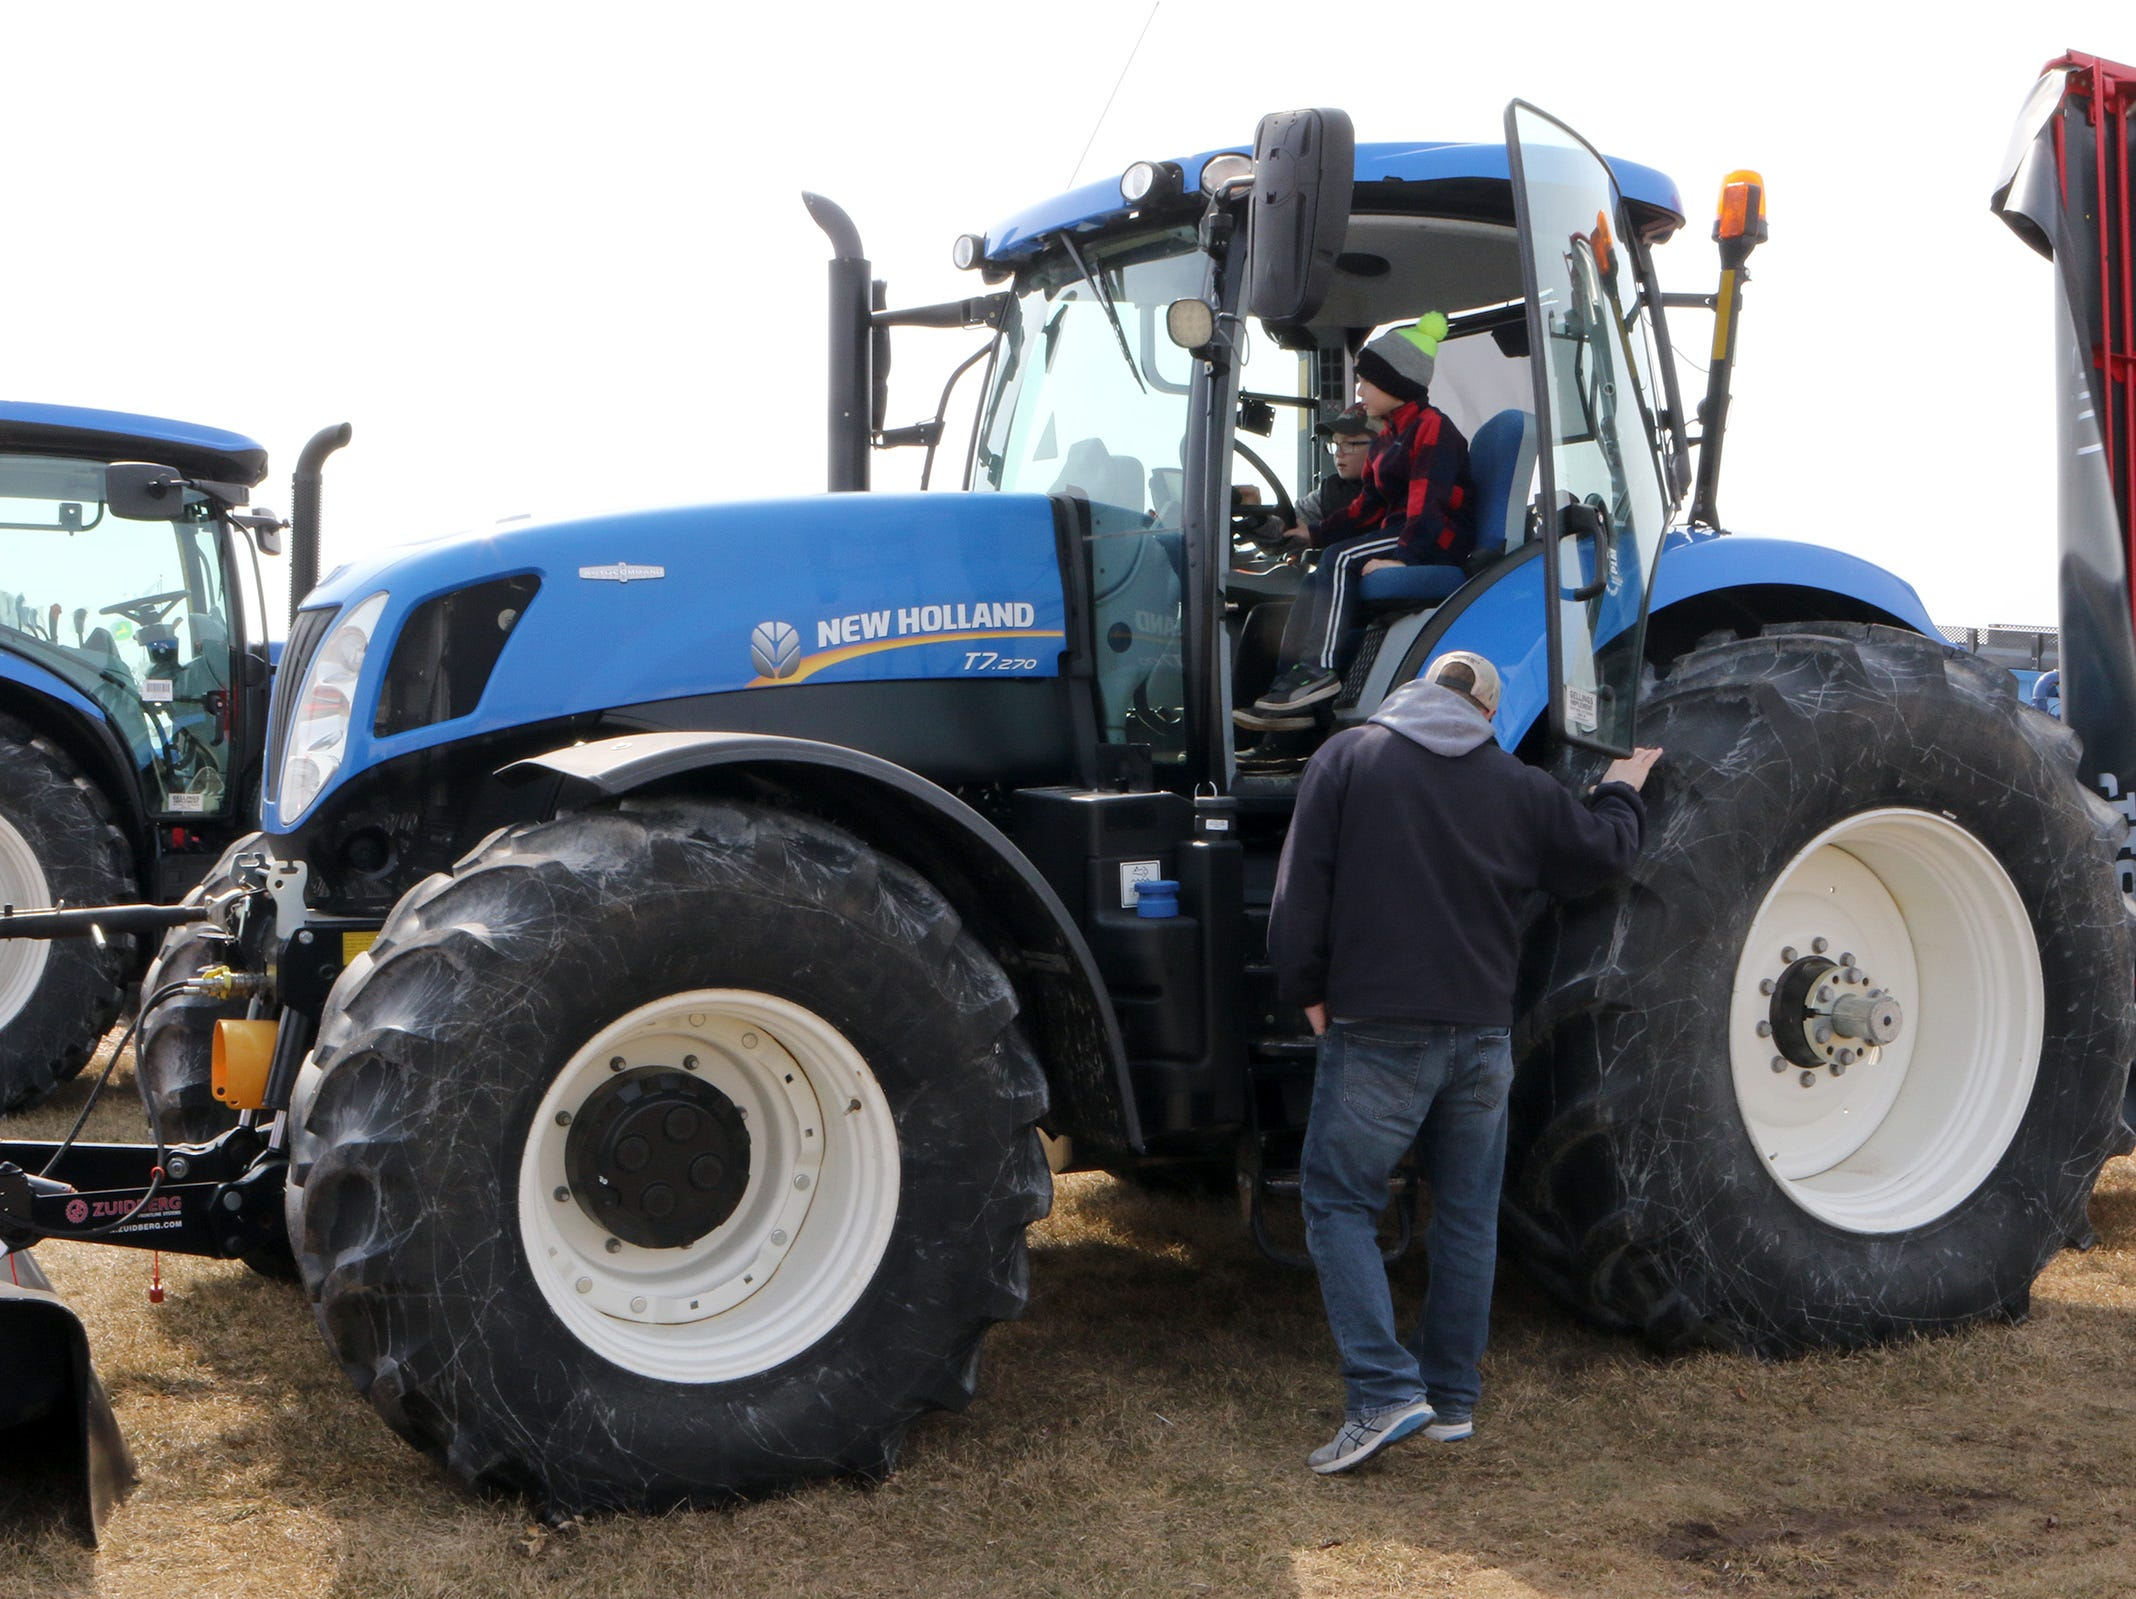 Bryan Schultz, of Oshkosh, and his sons Owen, 12 (left) and Evan, 8, check out a New Holland mower at the Wisconsin Public Service Farm Show on March 27 in Oshkosh.